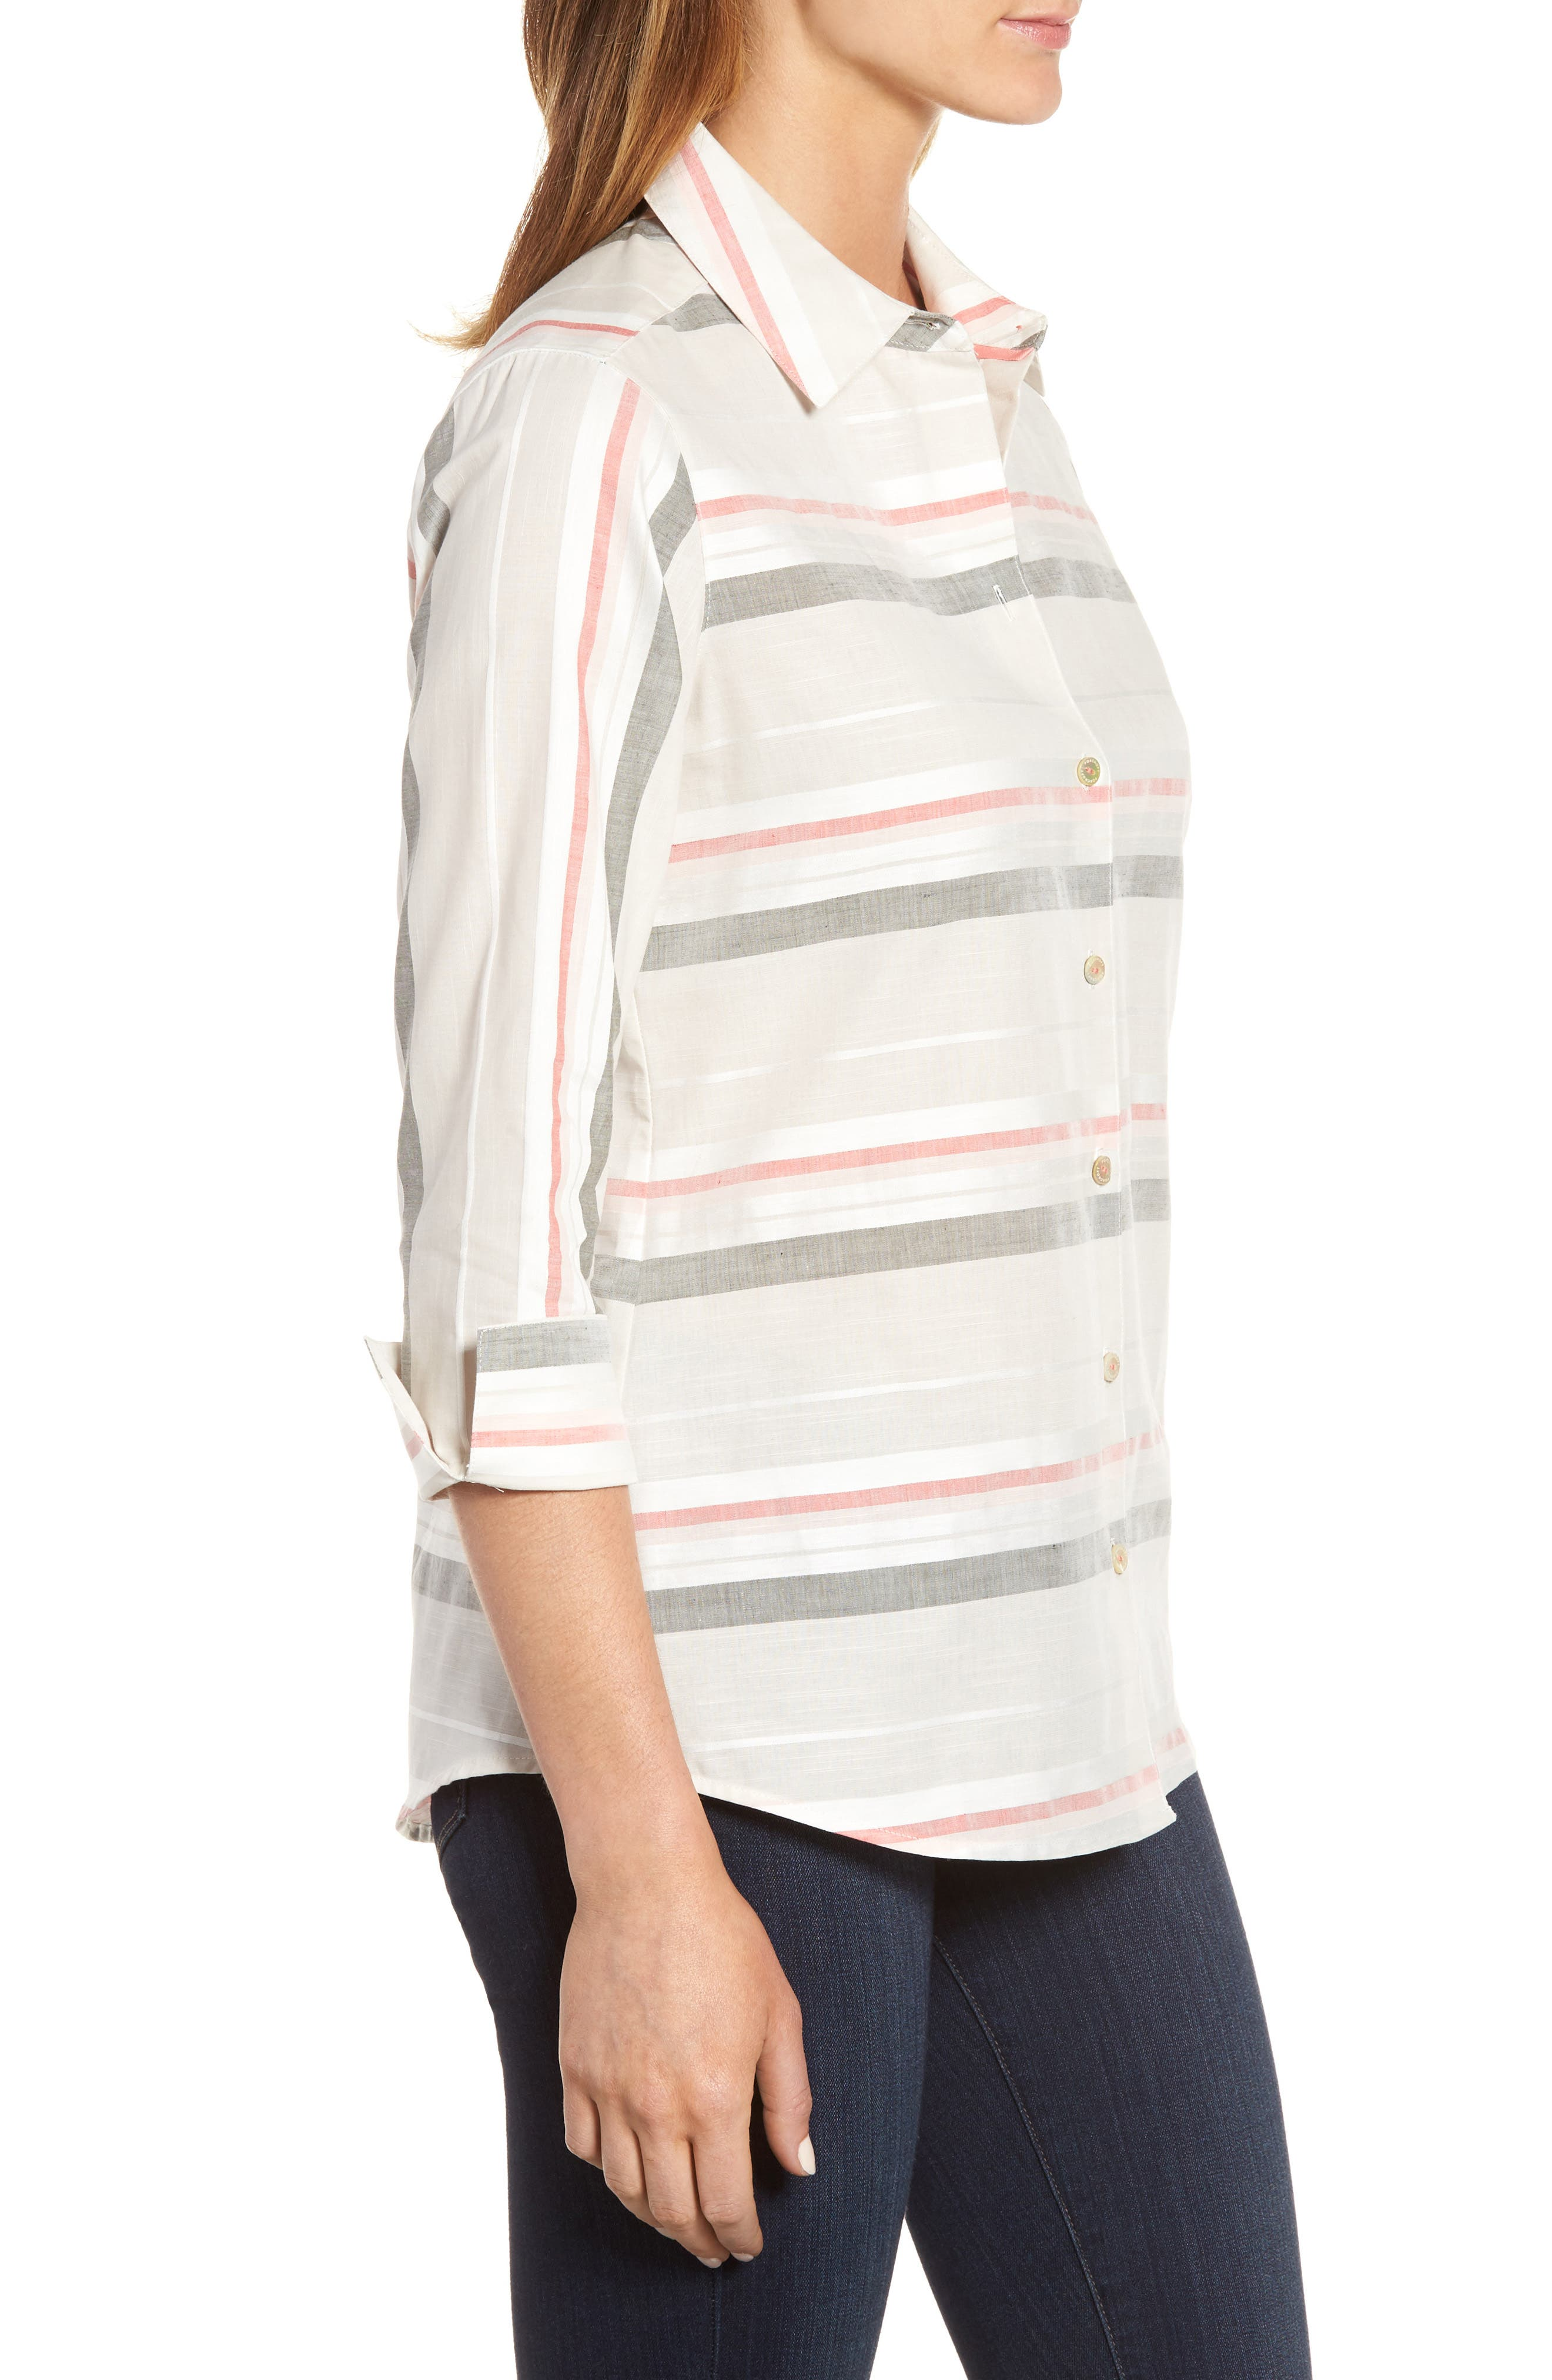 Alternate Image 3  - Foxcroft Fia Stripe Cotton & Linen Shirt (Regular & Petite)